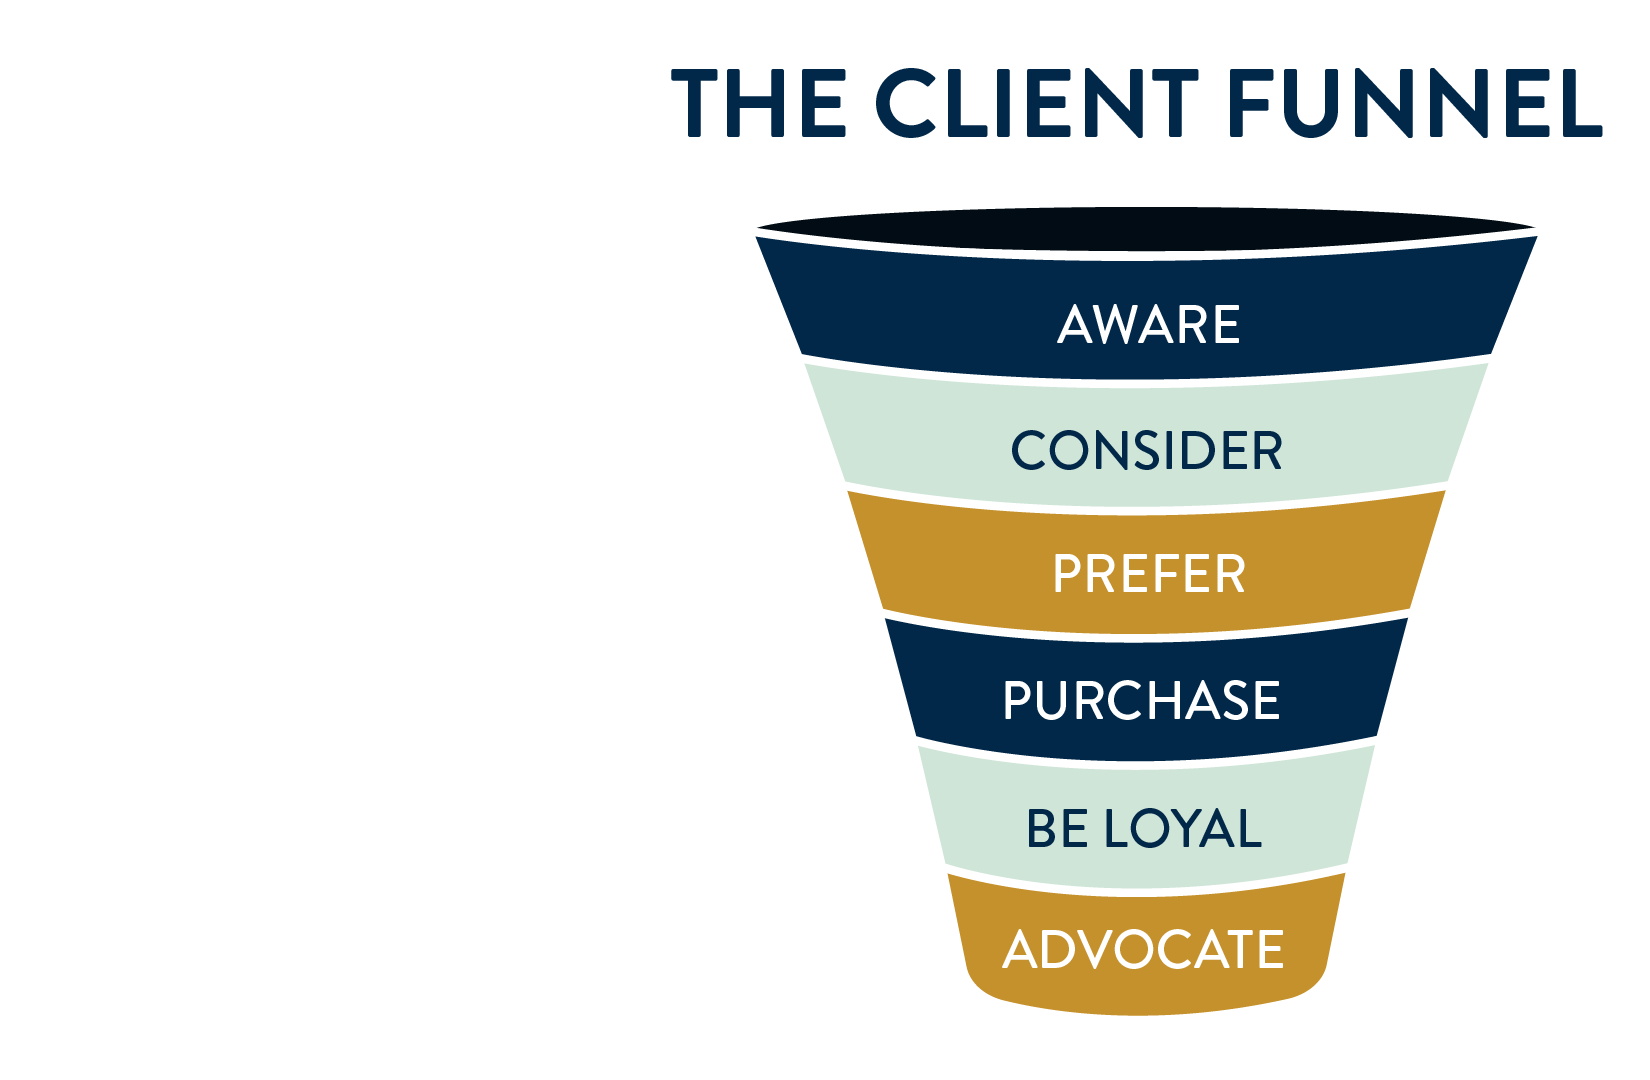 Most of their sales occur at the end of the sales funnel. - In other words, they have very little top of funnel, early-stage prospect opportunities in the pipeline.